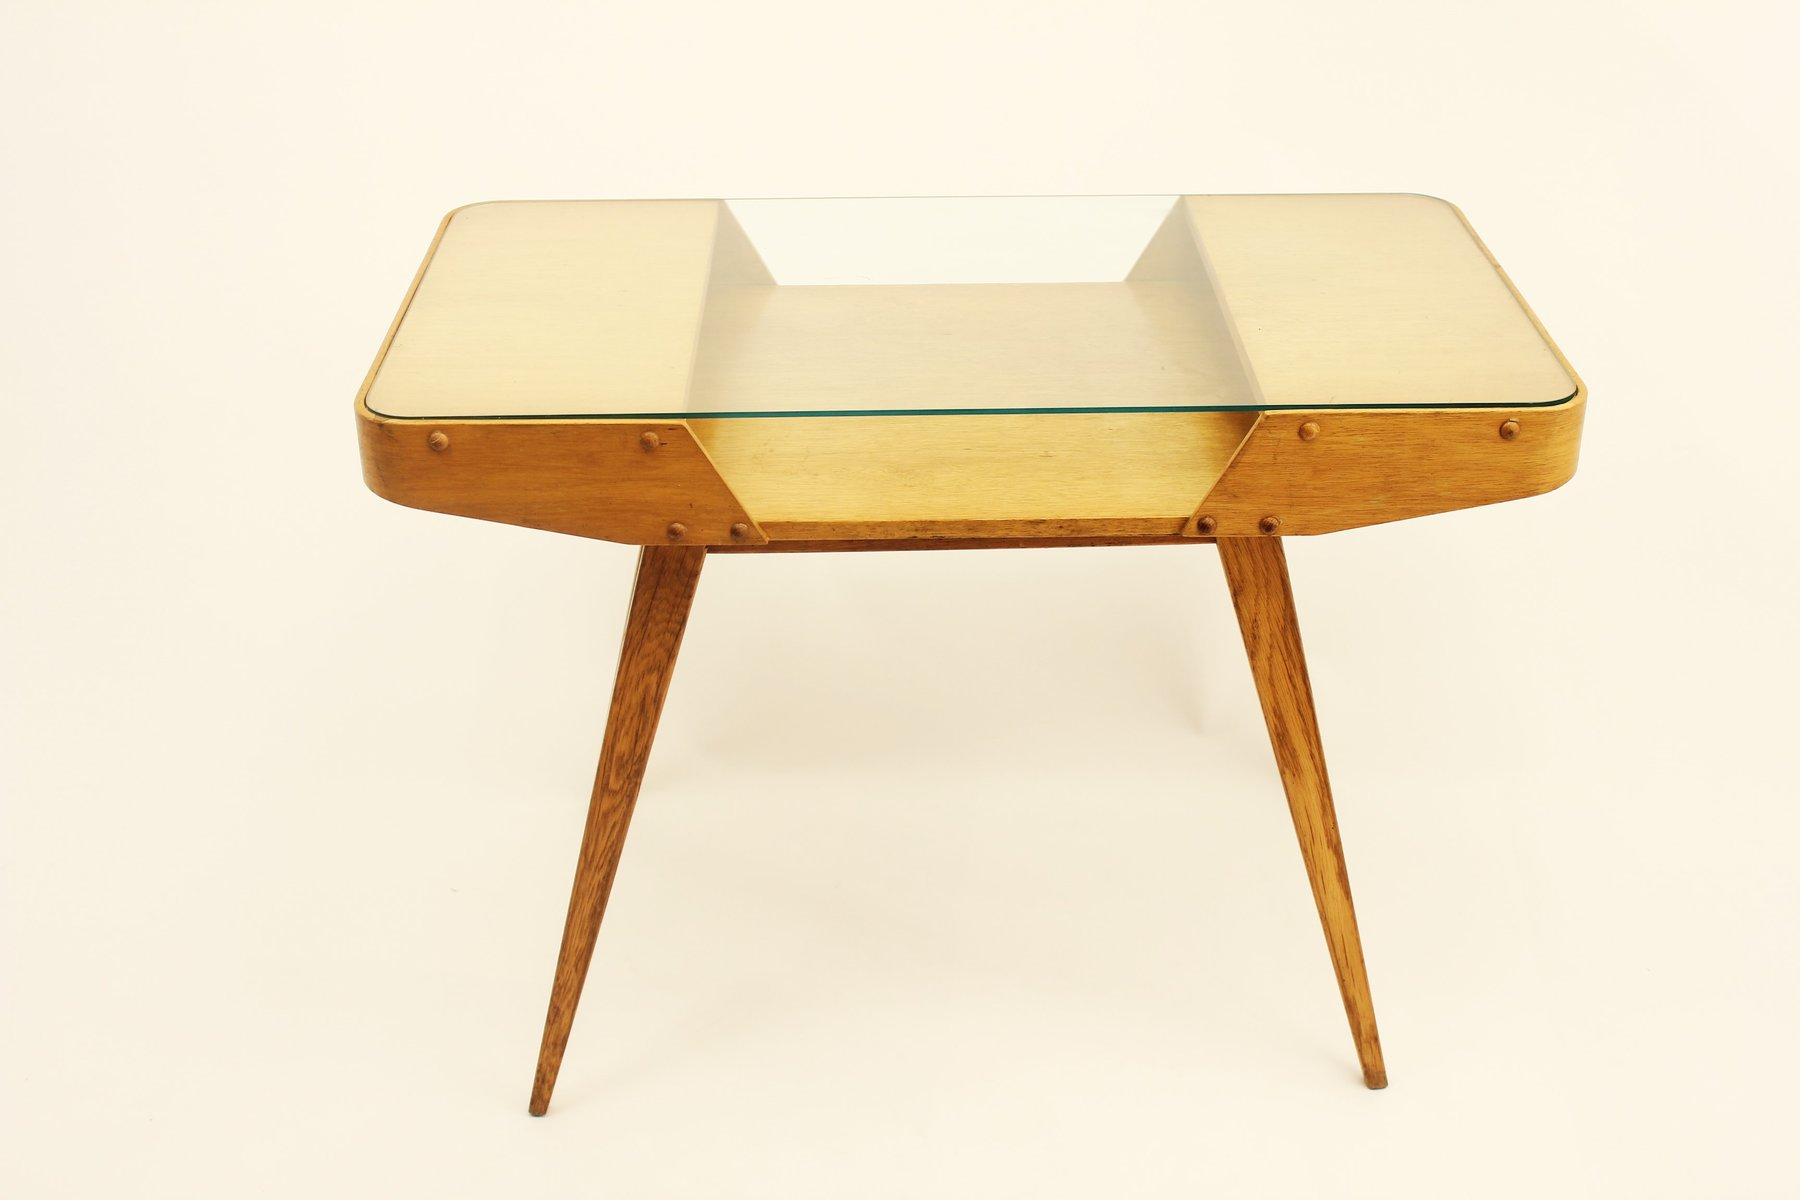 Vintage Czechoslovakian Oak Coffee Table With Glass Top 1960s